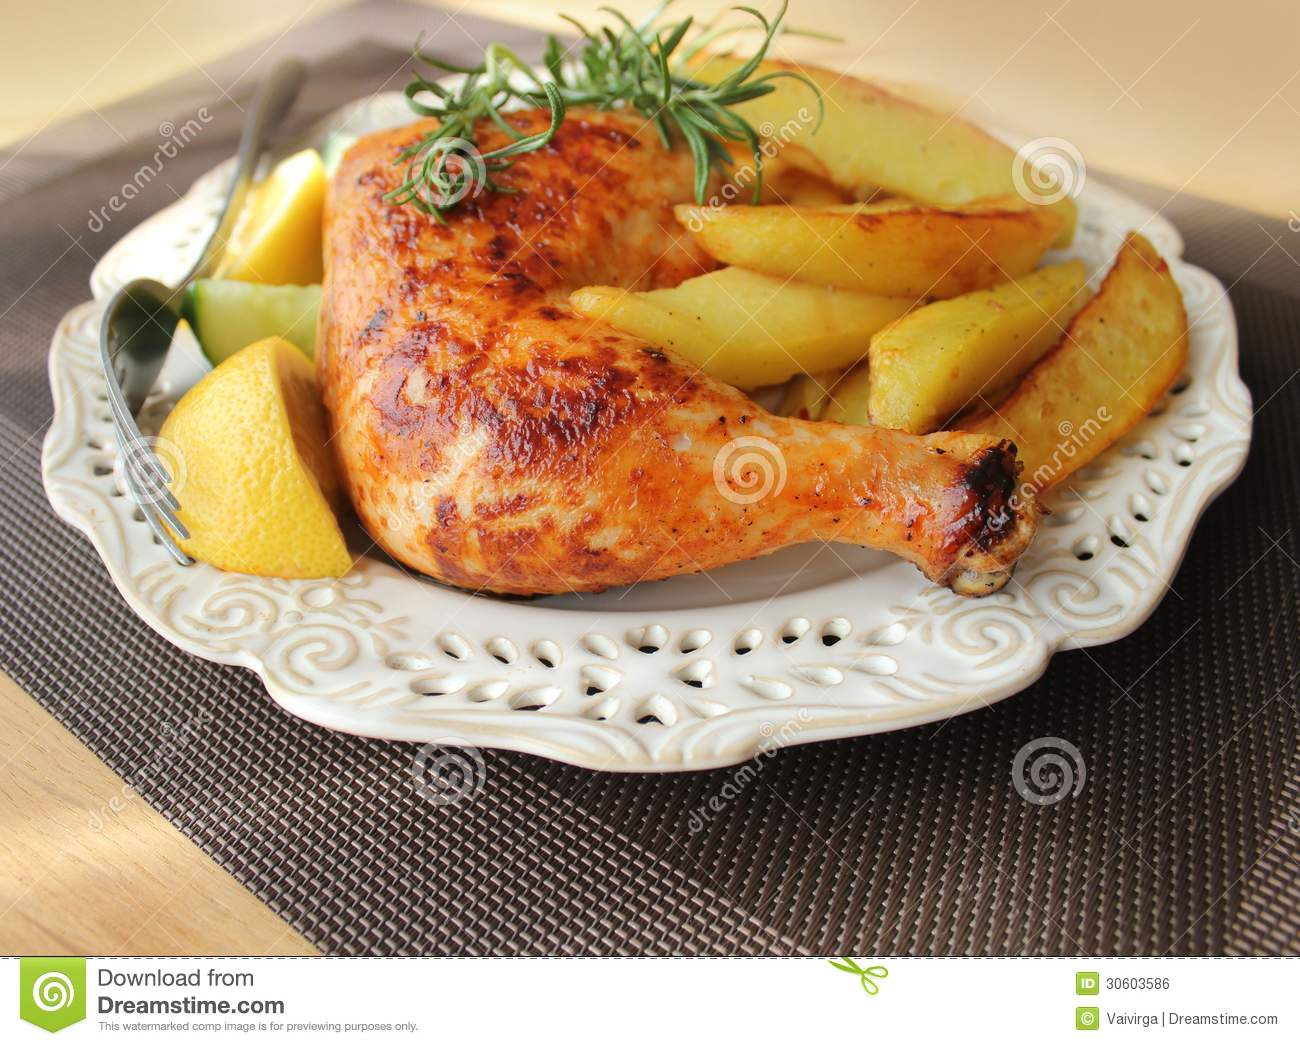 Roasted Chicken Leg With Fries Potato And Lemon Stock Photo Image